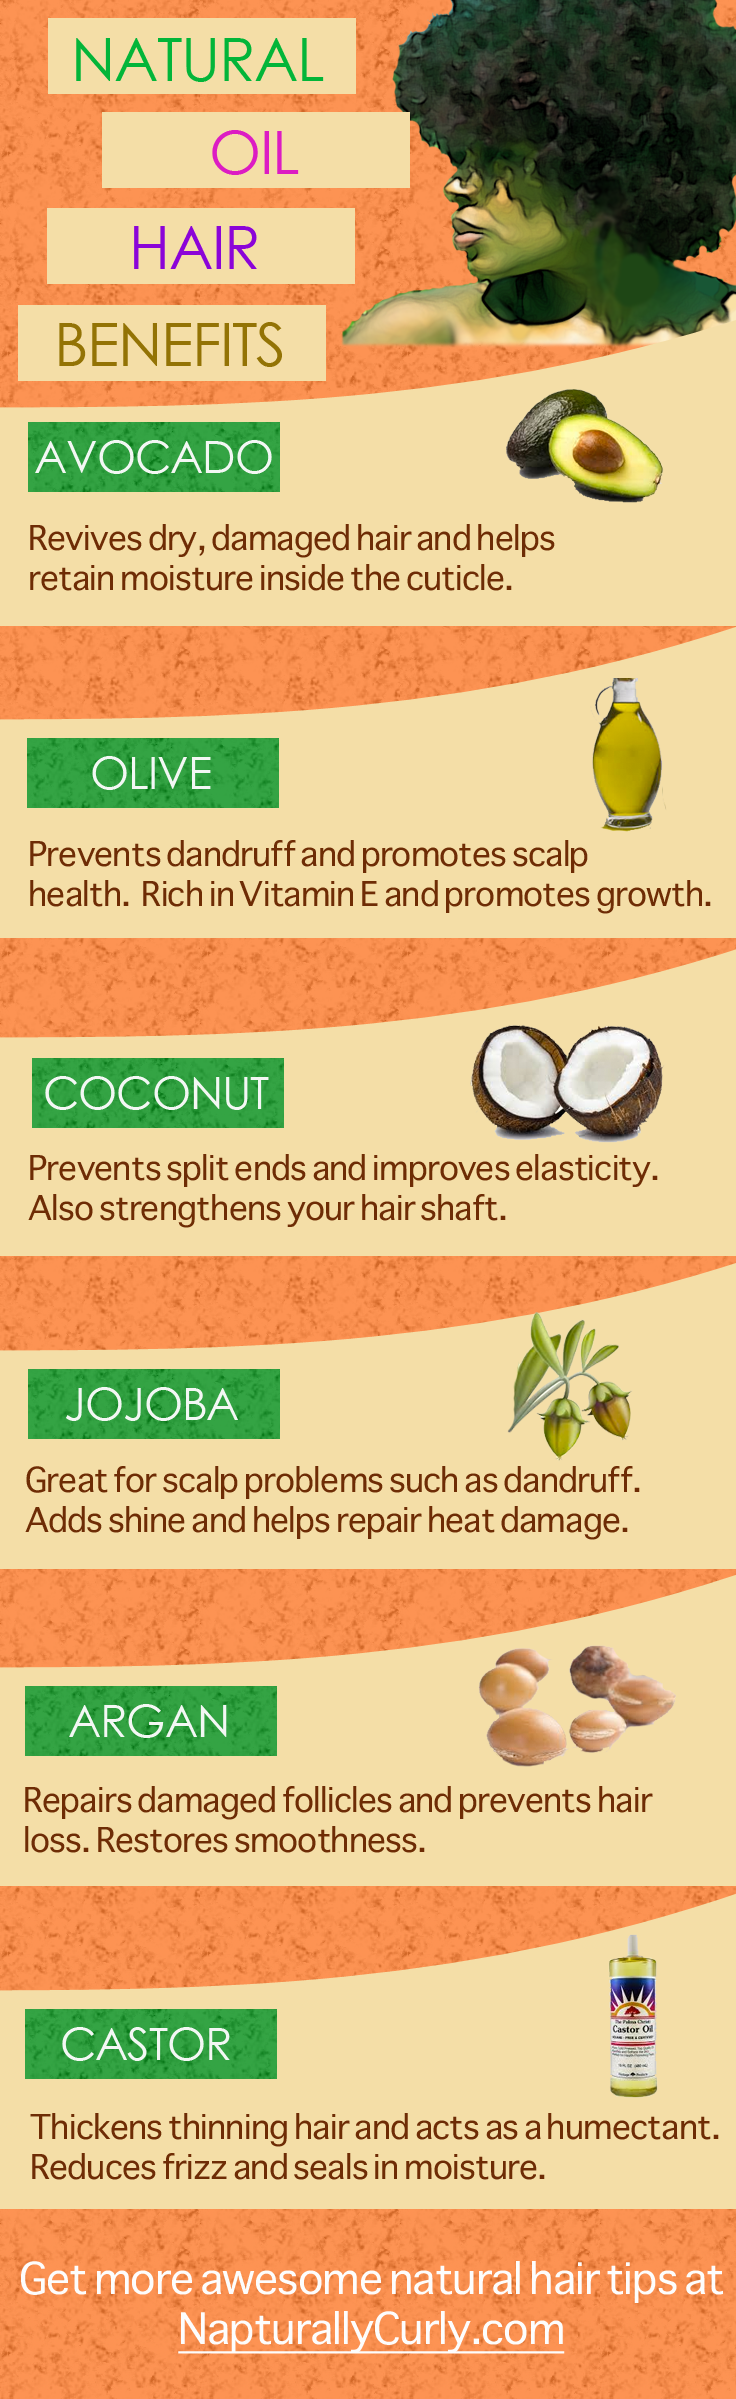 The Benefits Of Avocadooil Oliveoil Coconutoil Jojobaoil Arganoil Castoroil Natural Hair Oils Natural Hair Styles Natural Hair Care